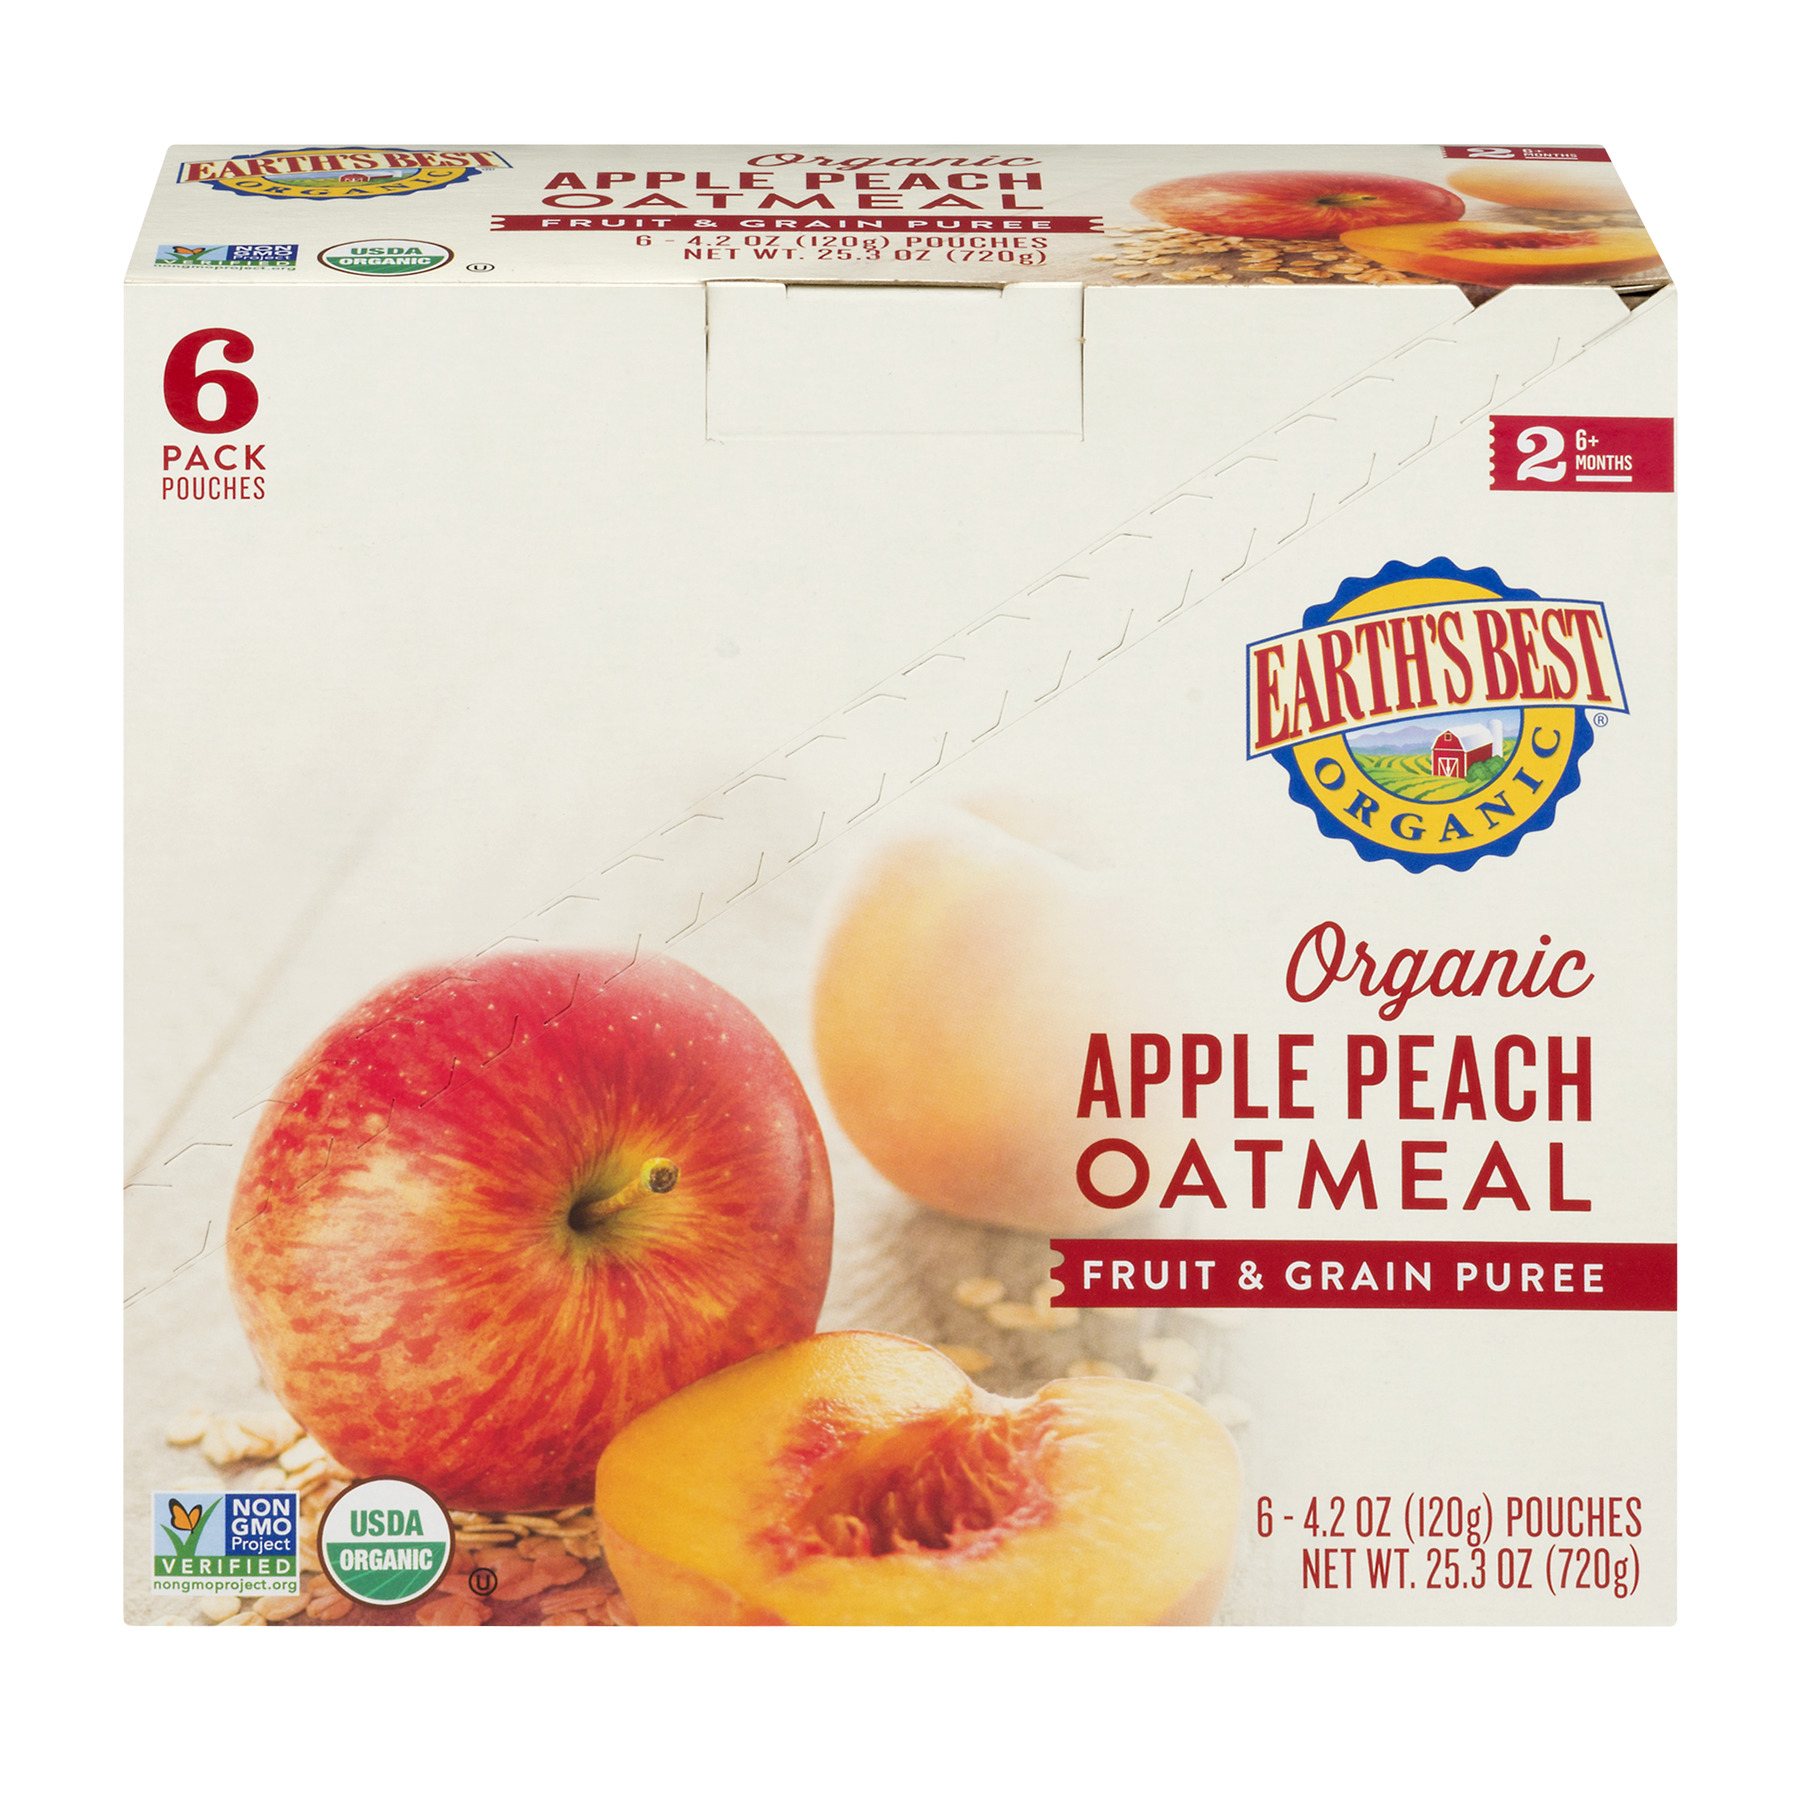 Earth's Best Organic Apple Peach Oatmeal Fruit & Grain Puree 6+ Months - 6 PK, 4.2 OZ